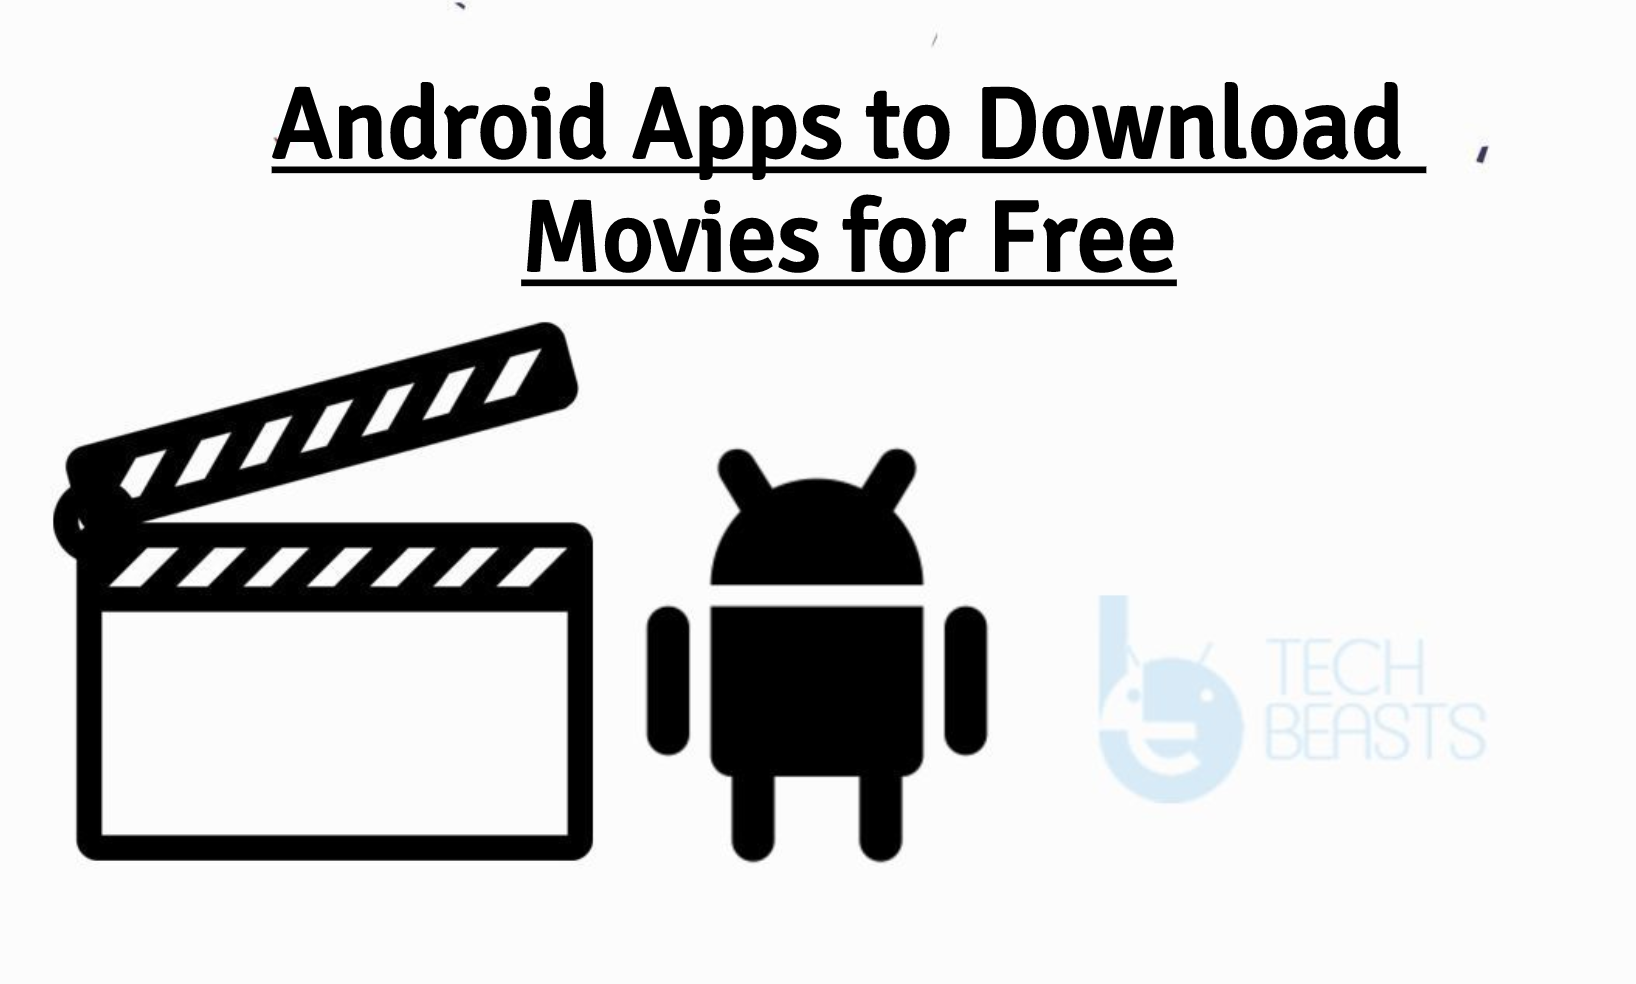 Android Apps to Download Movies